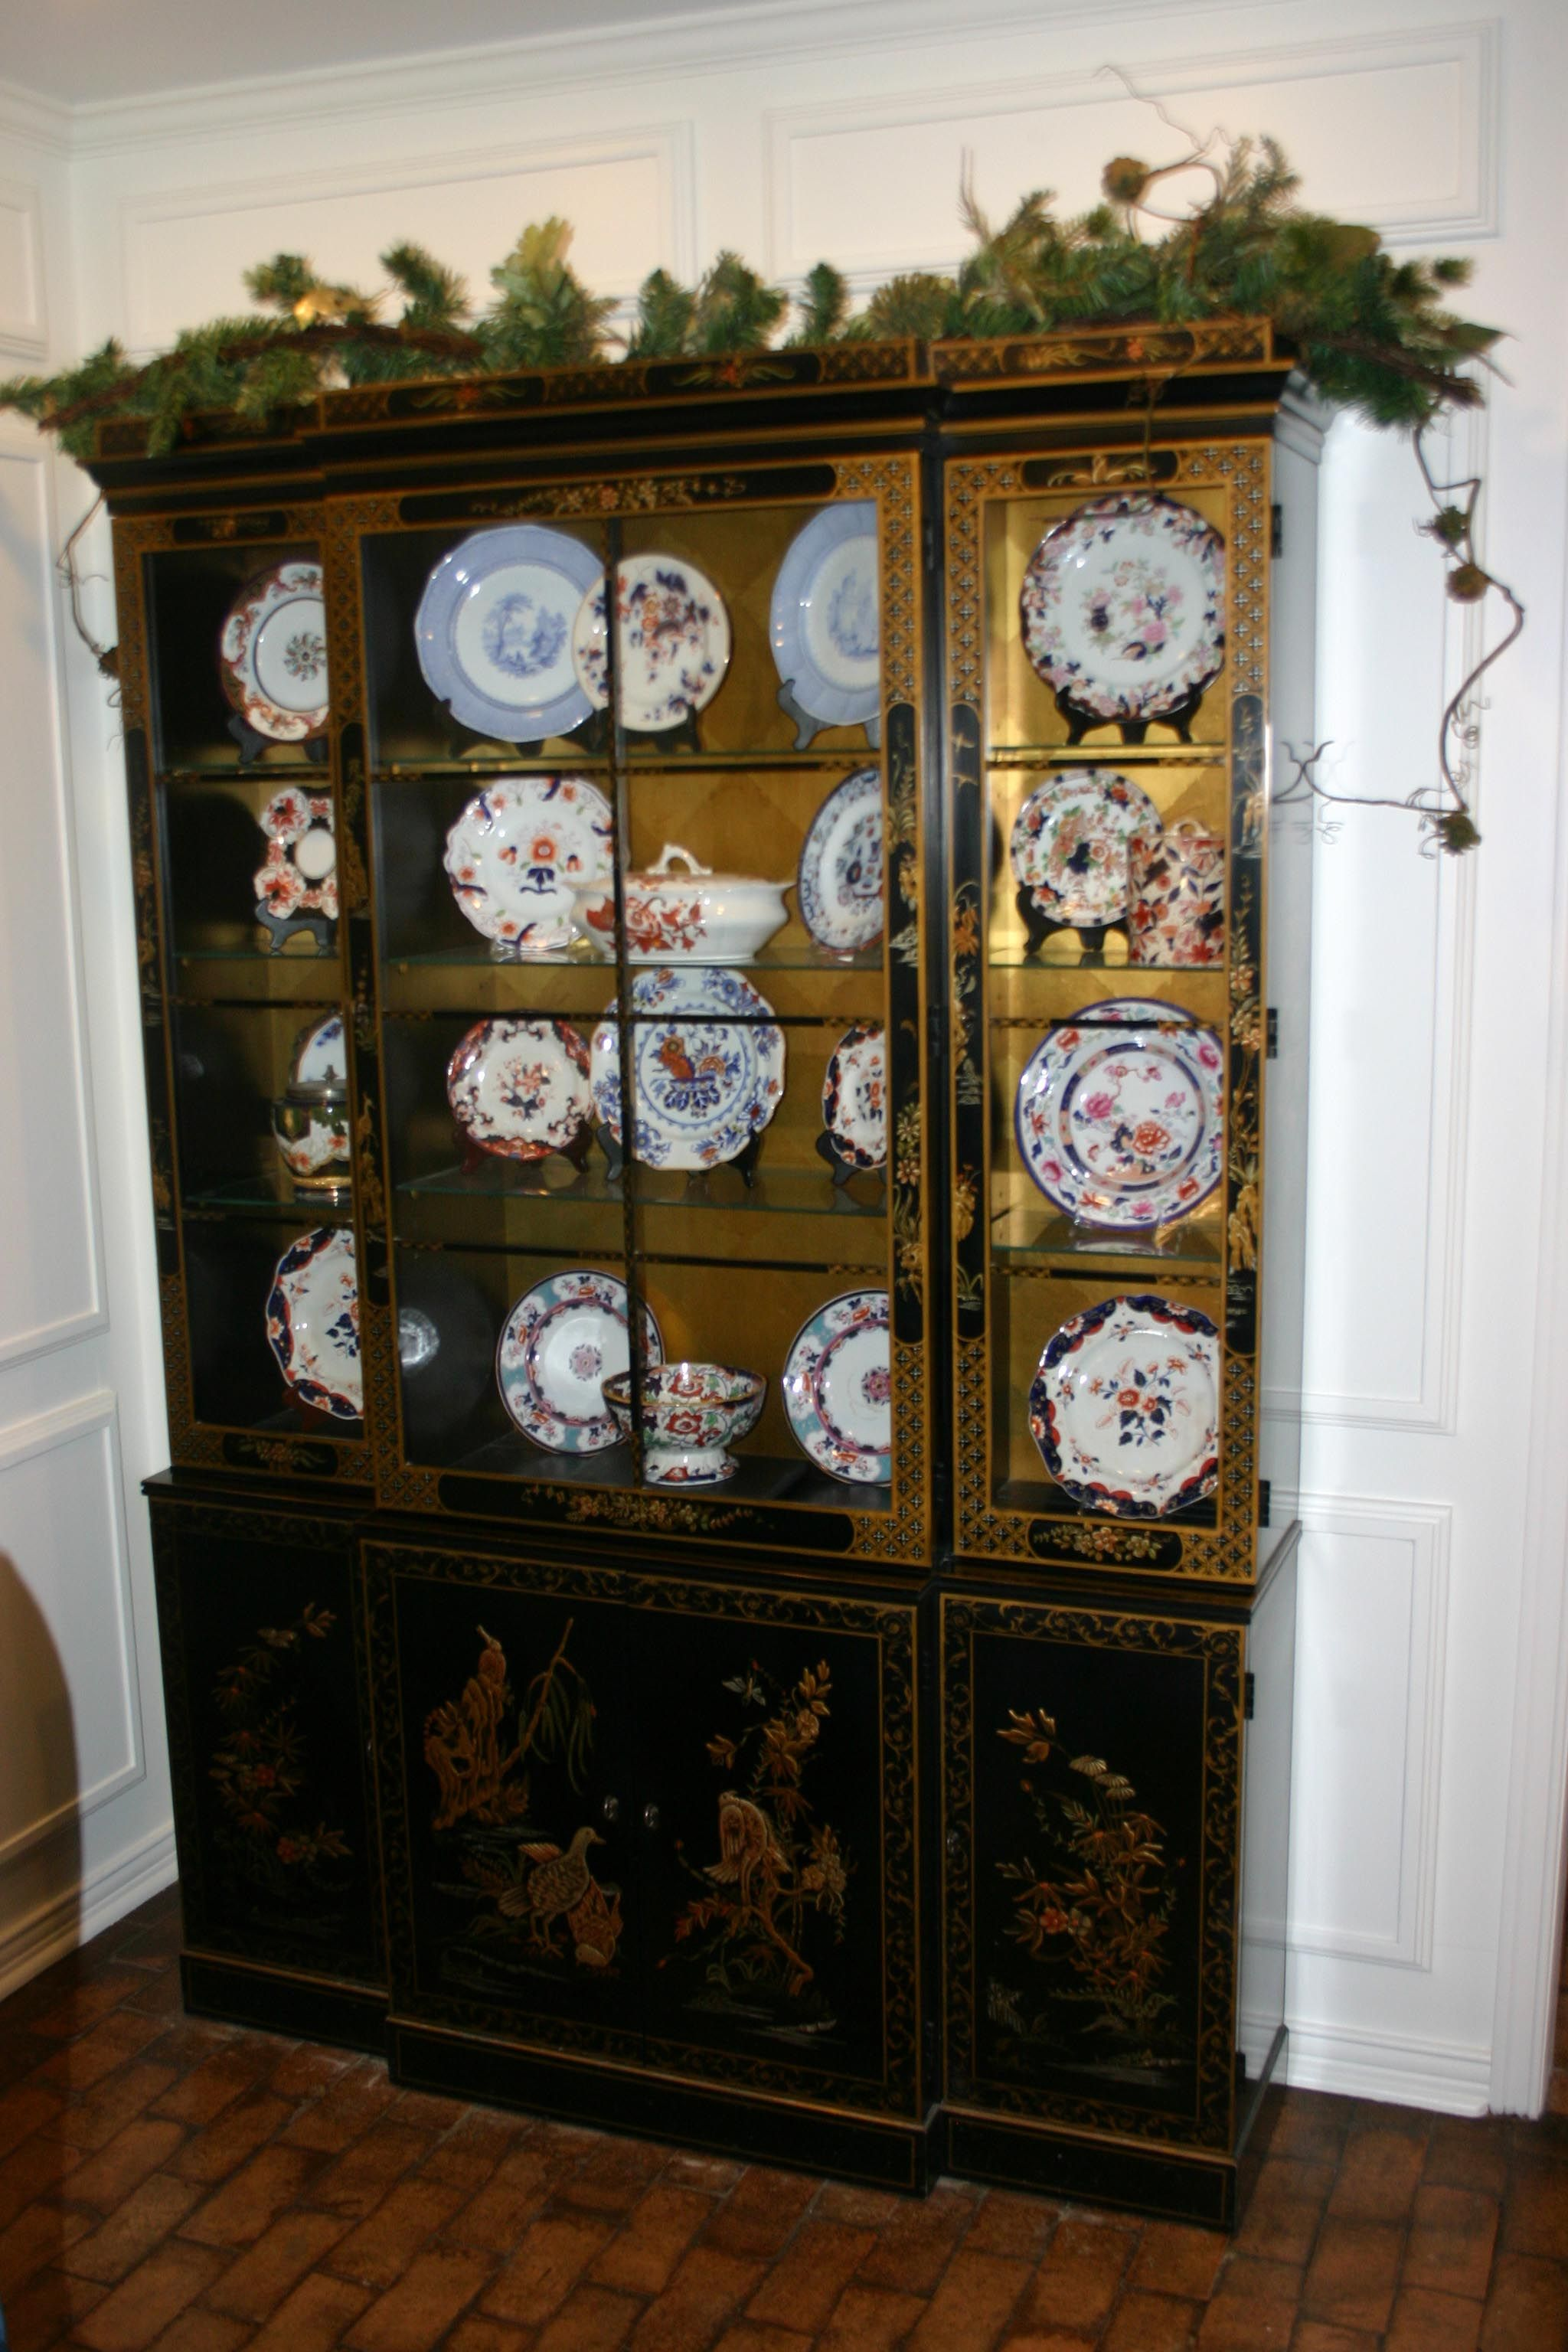 A garland decked with pine cones tops the Chinese lacquer cabinet